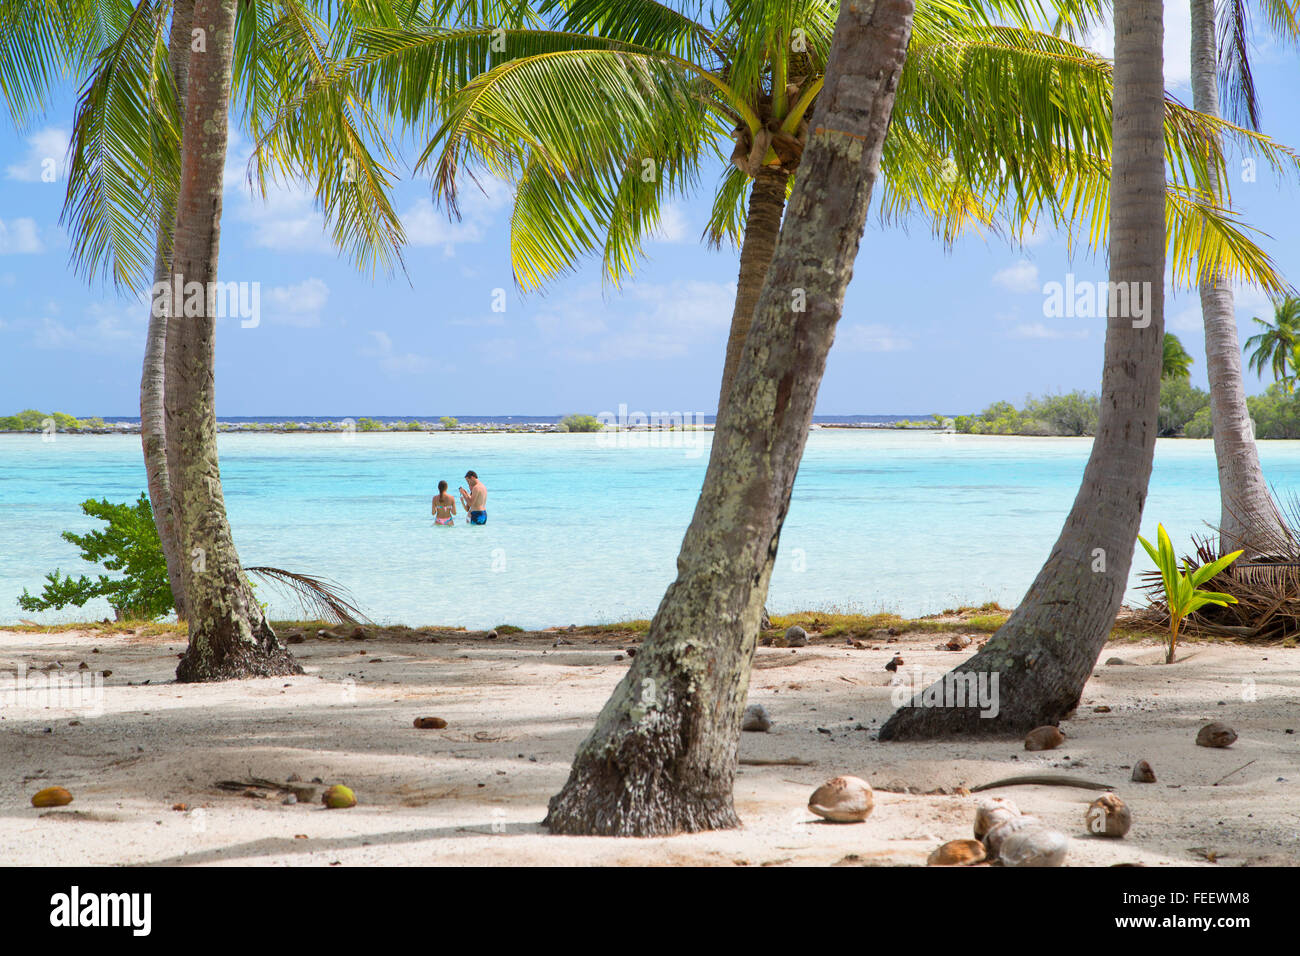 People at Green Lagoon, Fakarava, Tuamotu Islands, French Polynesia - Stock Image